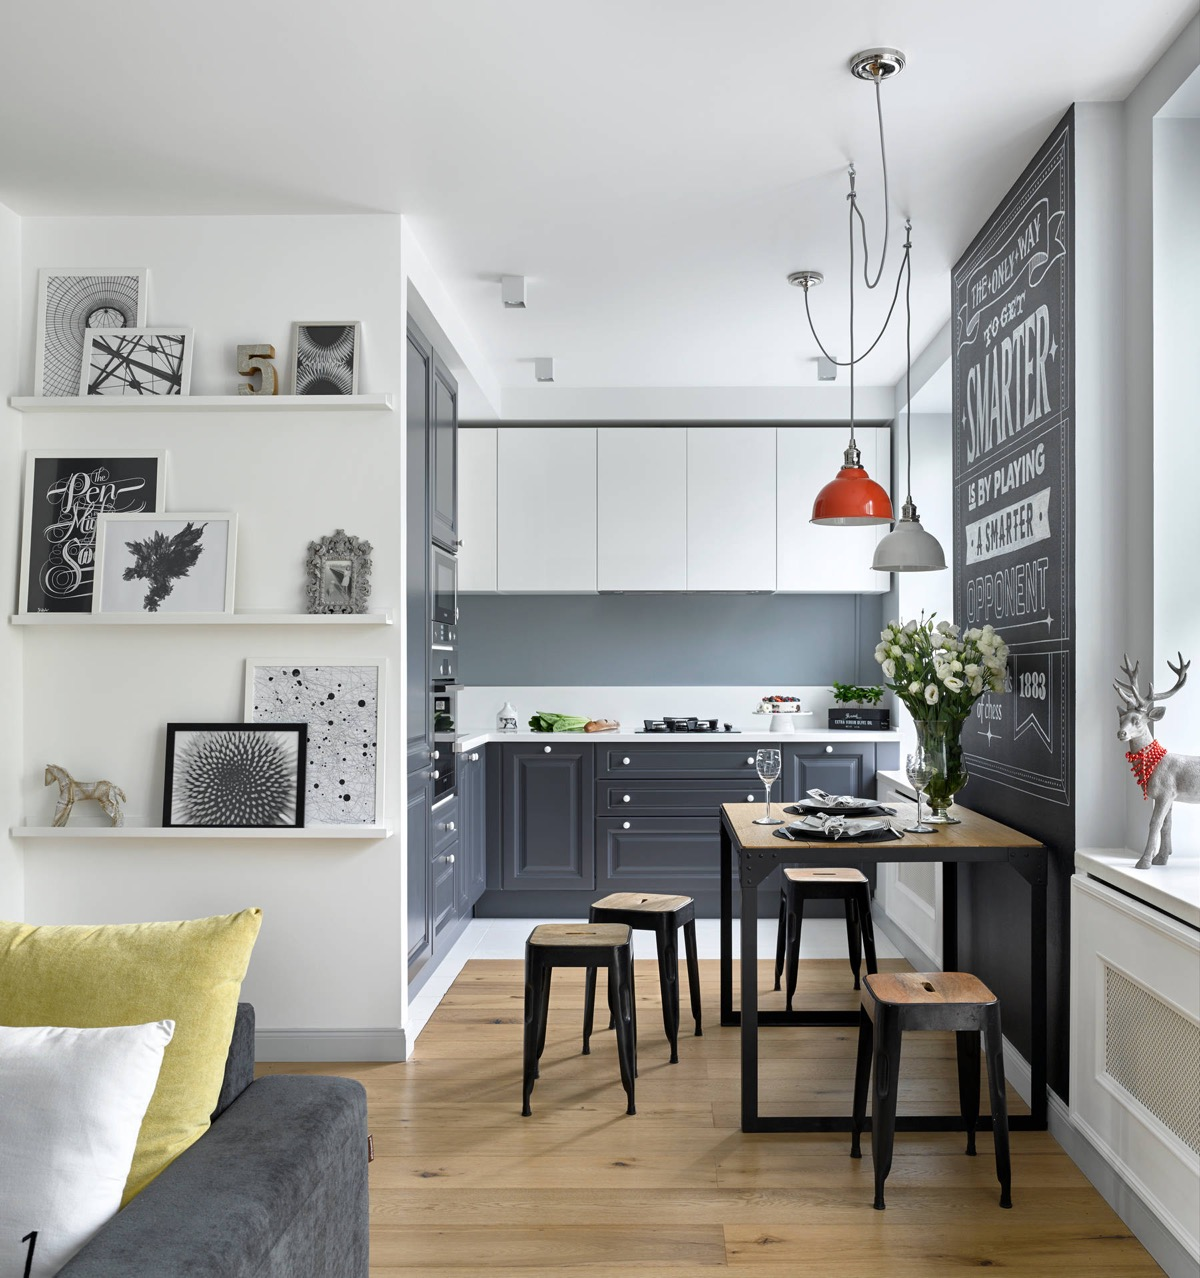 a small kitchen is positioned in the corner of the living room area. grey base cabinets and white upper cabinets give the small space some contrast. a wooden dining table separates the kitchen and living areas